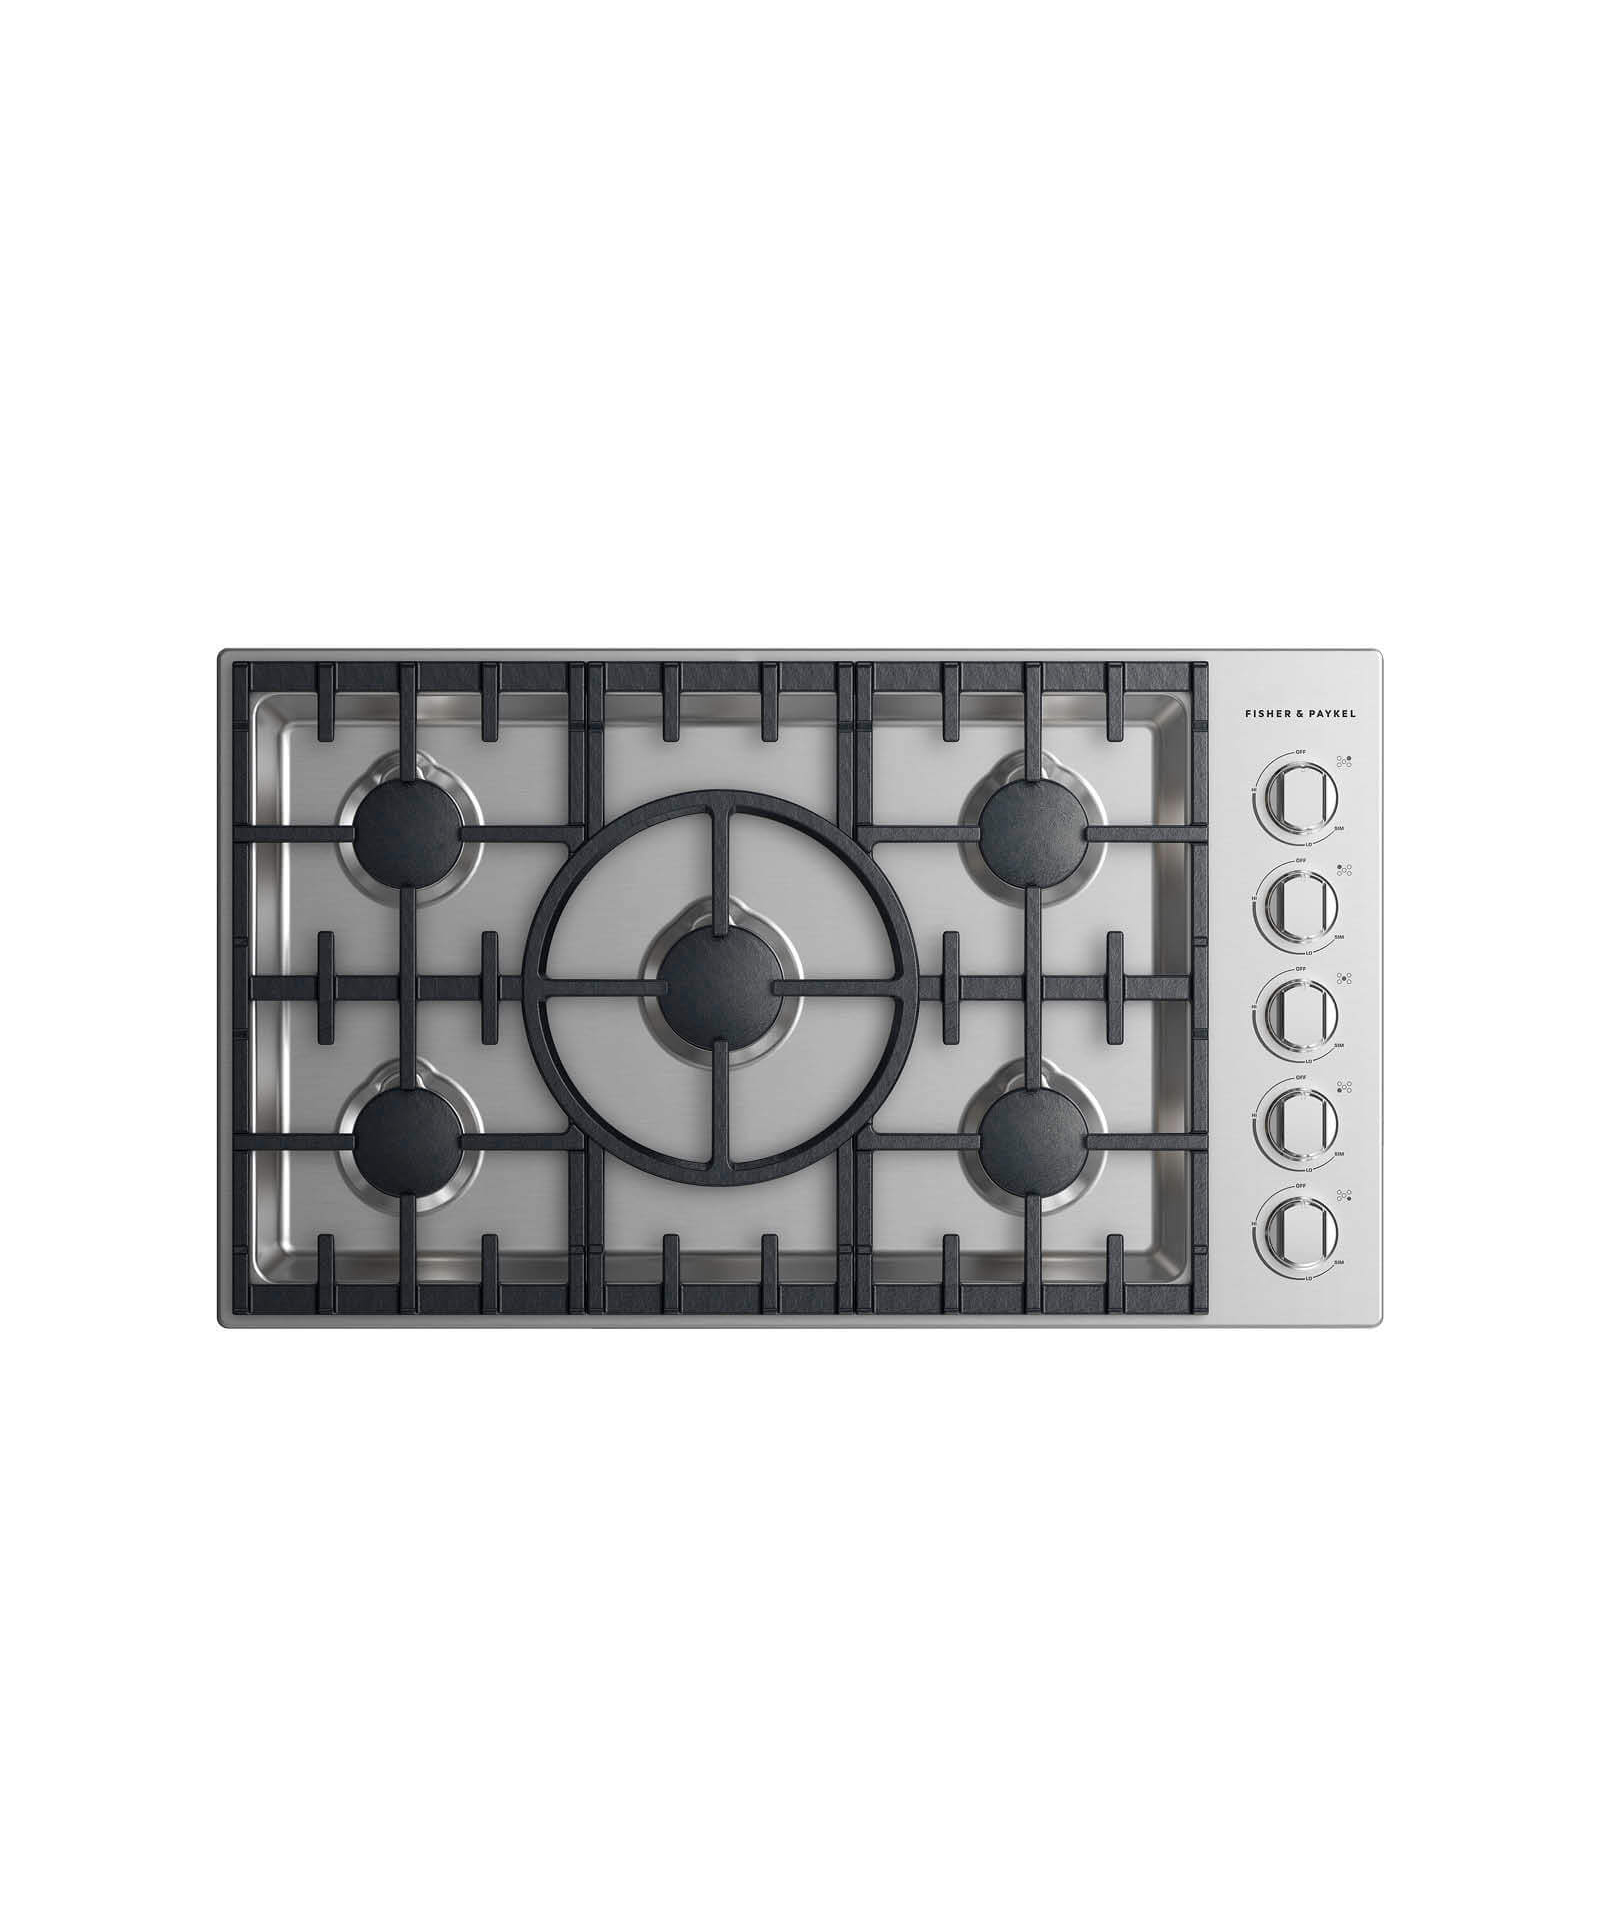 "Fisher and Paykel Gas Cooktop 36"", 5 burner"